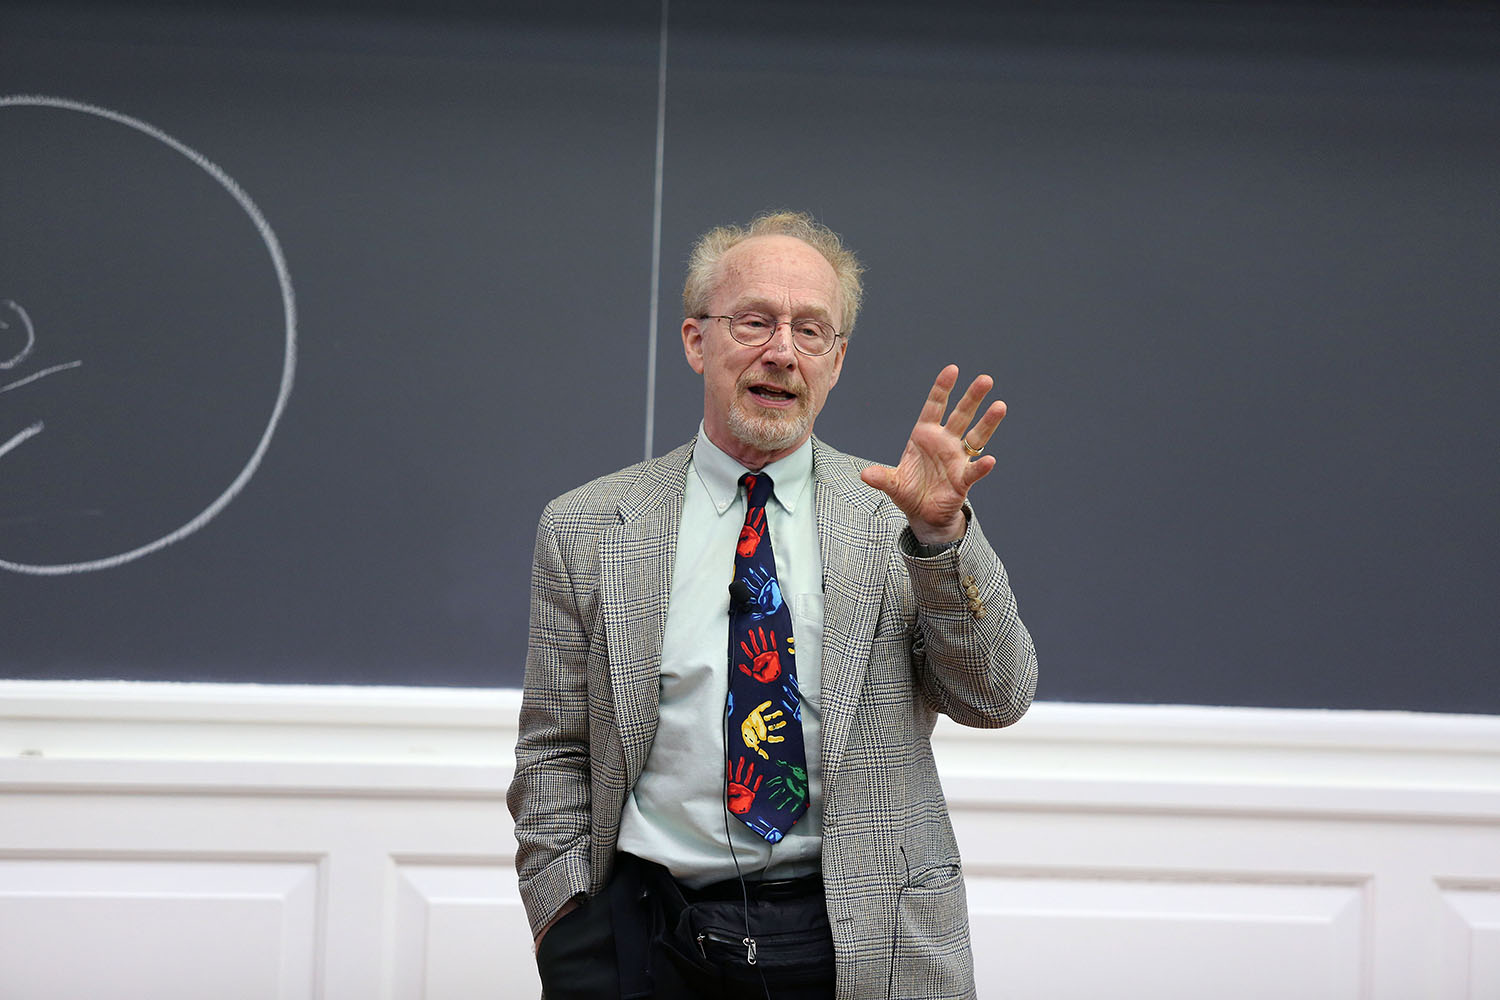 Kurt Fischer during Brain Awareness Week 2014